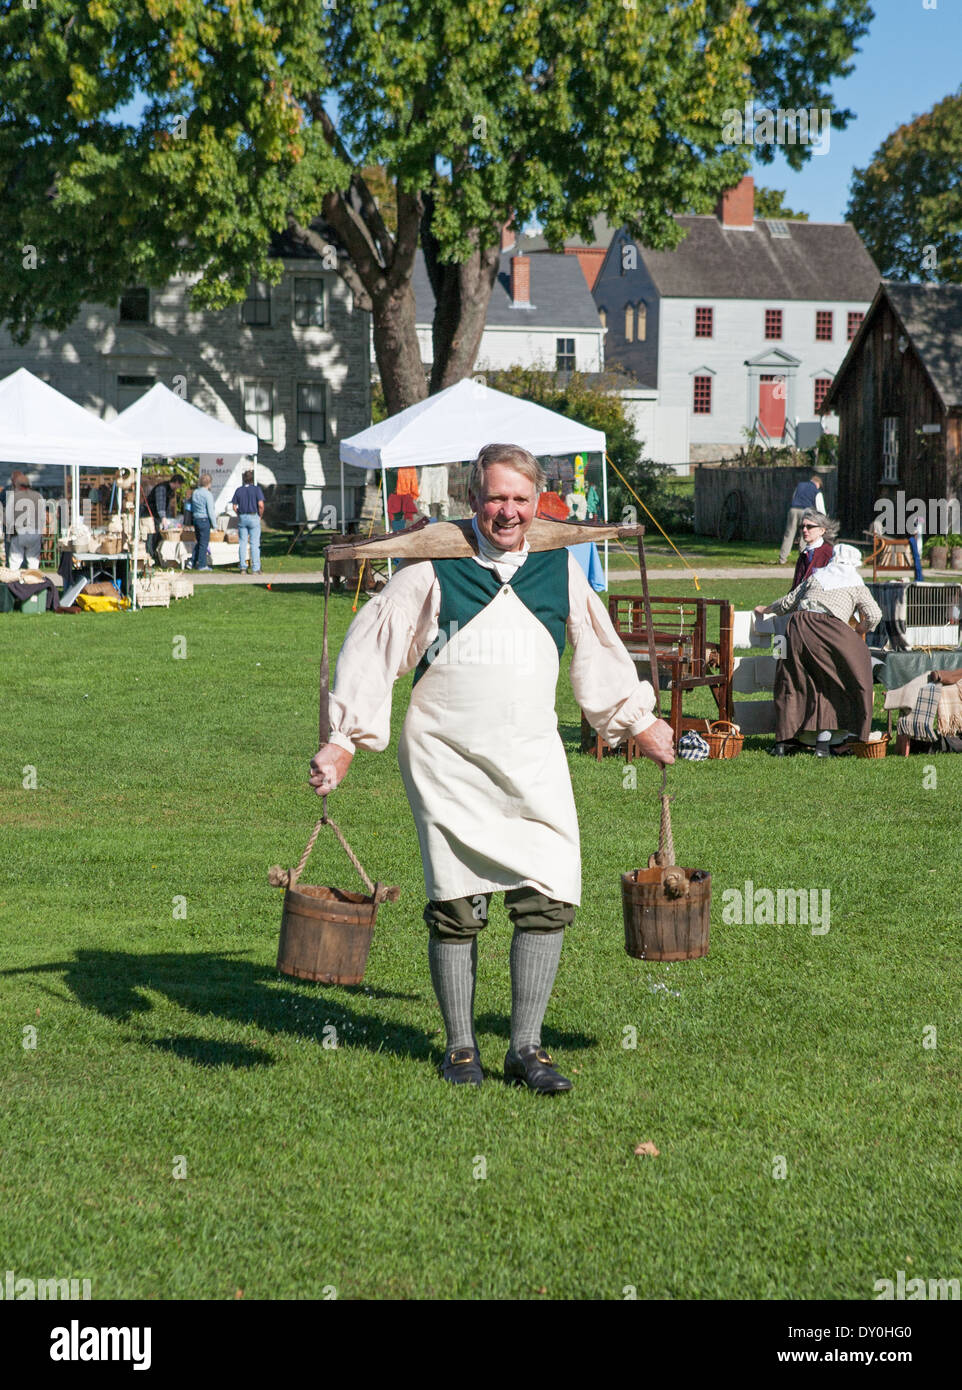 Man carrying buckets using a yoke and wearing period dress Strawbery Banke Museum Portsmouth New Hampshire, New England, USA - Stock Image